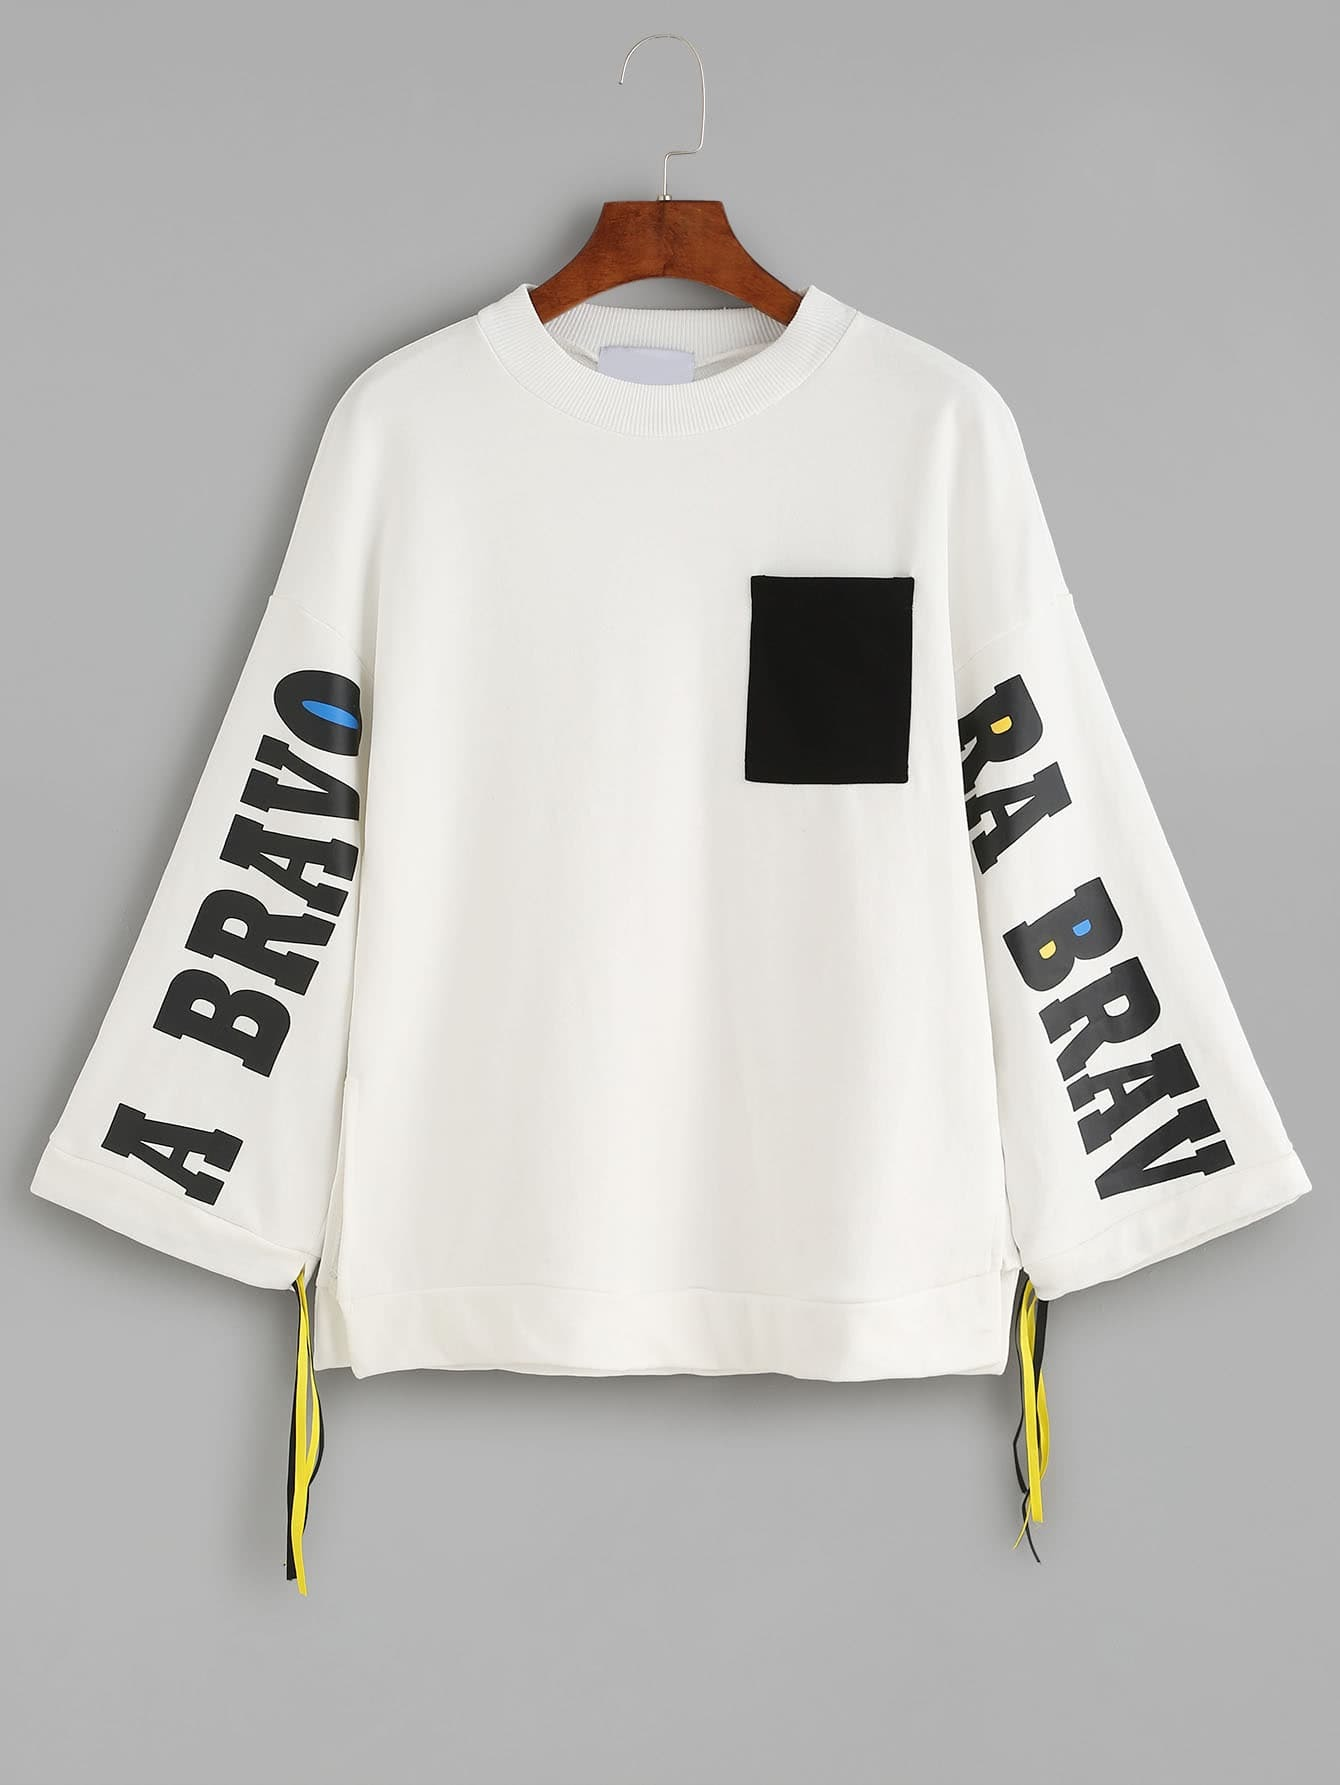 White Letters Print Contrast Pocket Drawstring SweatshirtWhite Letters Print Contrast Pocket Drawstring Sweatshirt<br><br>color: White<br>size: one-size